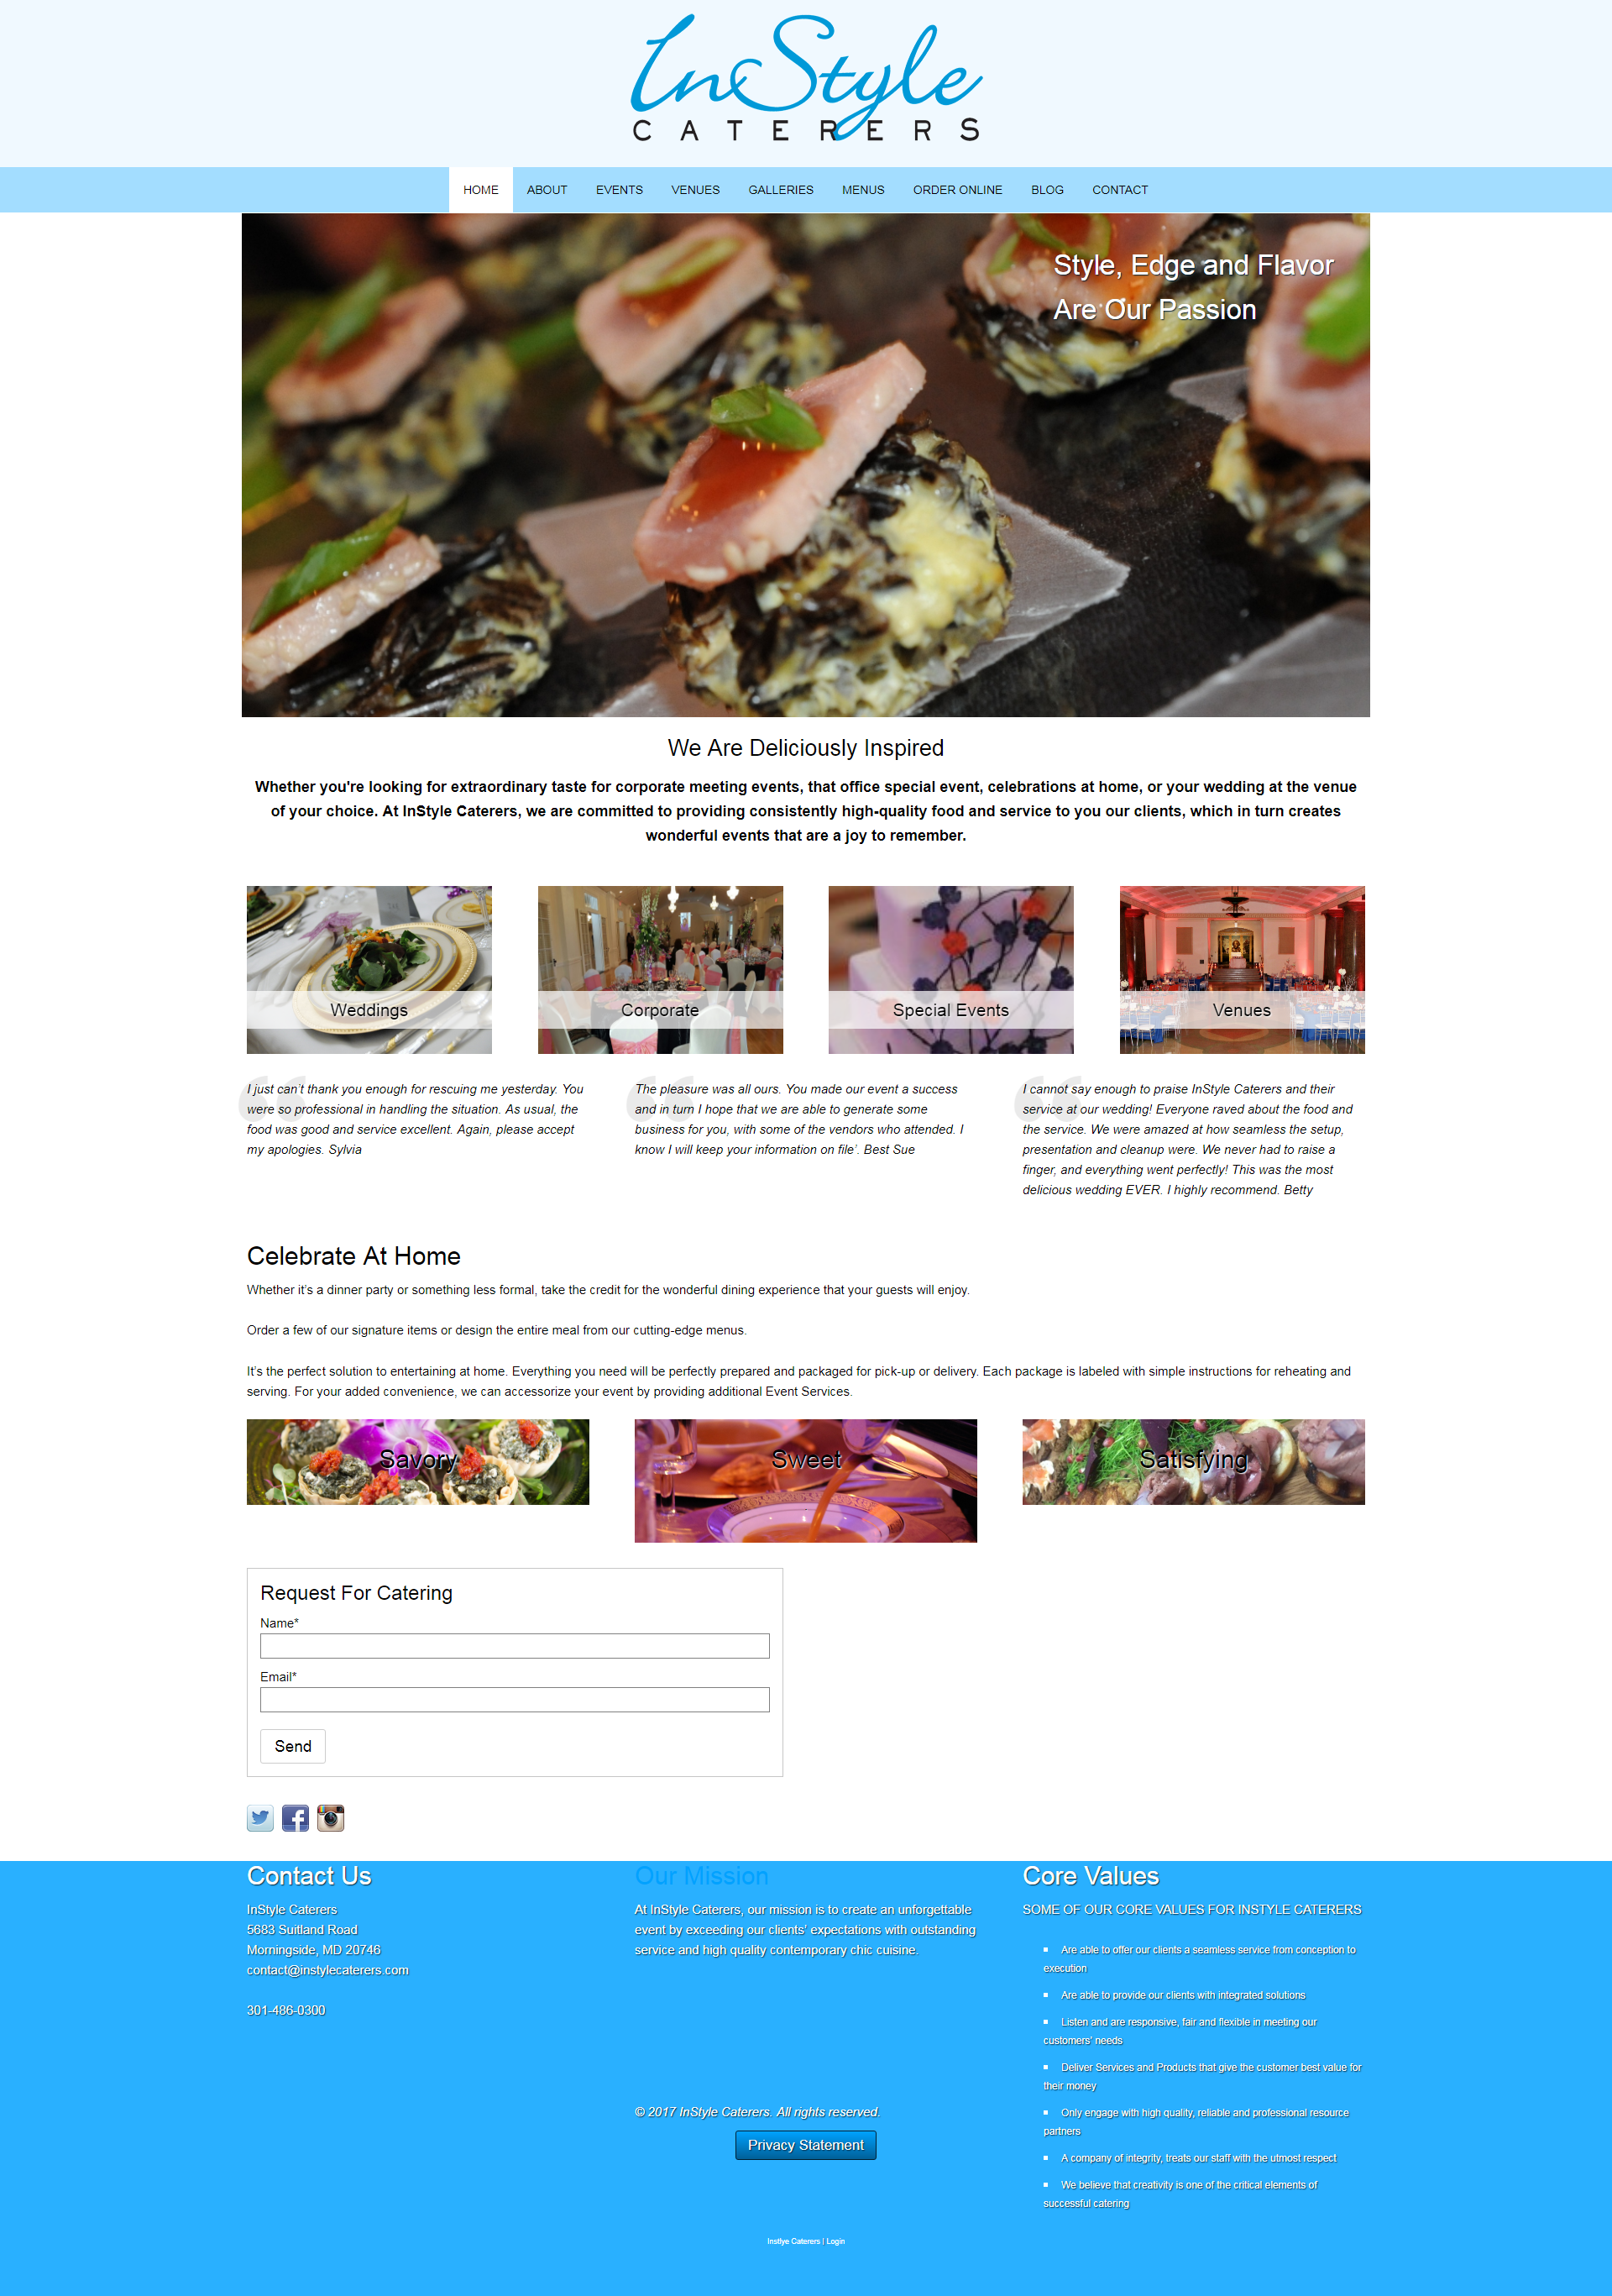 Instlye Cateres